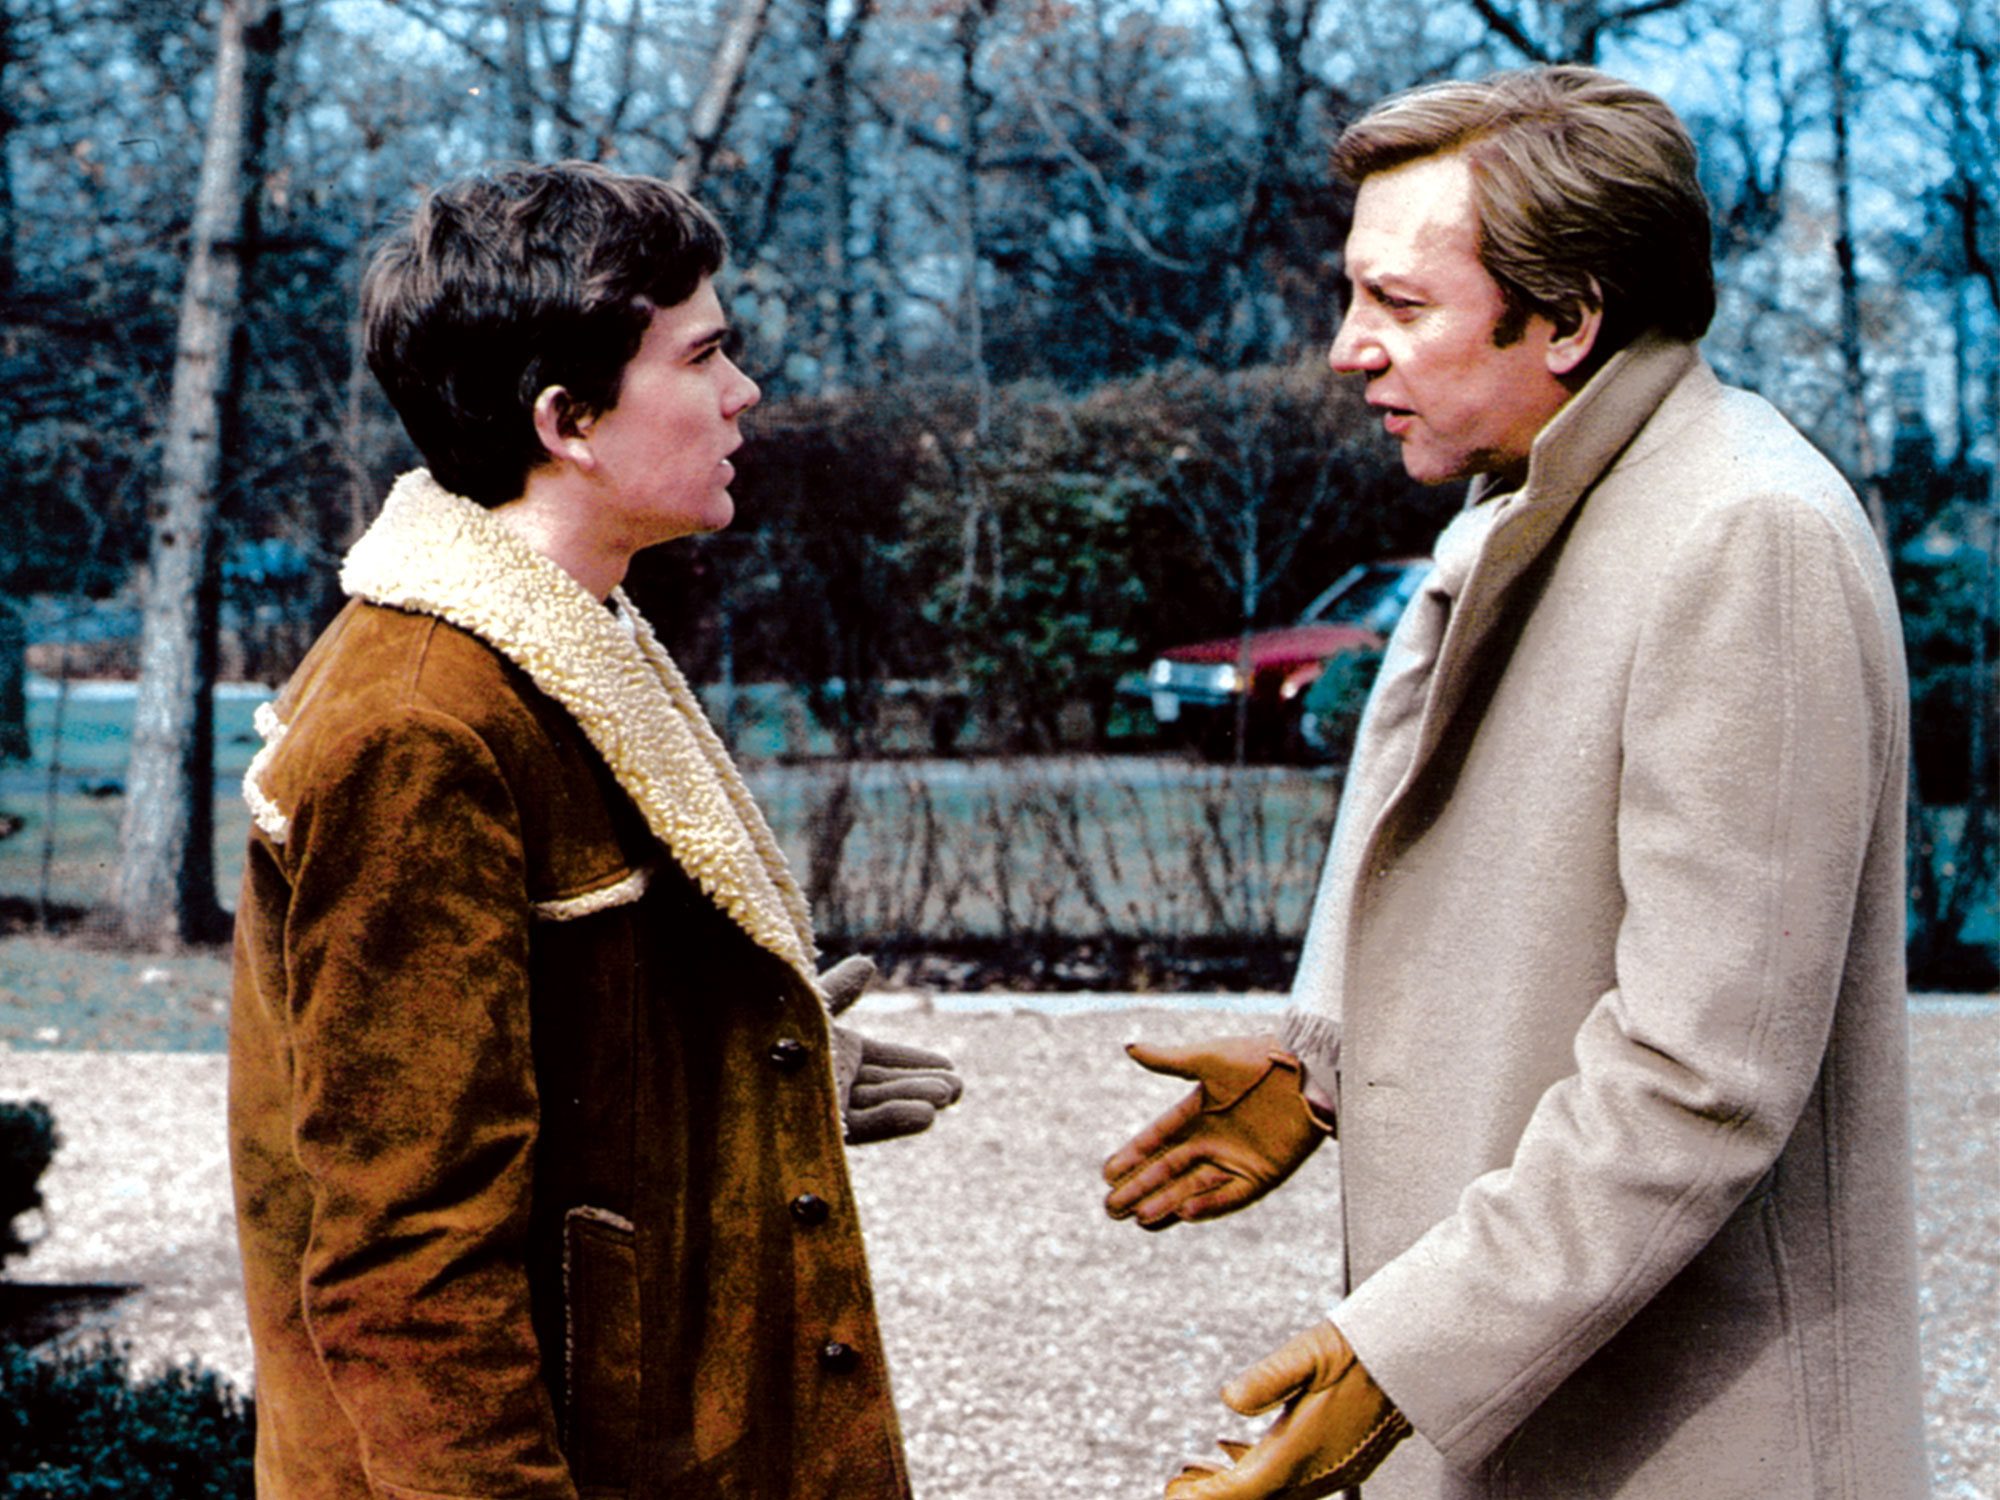 Timothy Hutton and Donald Sutherland in Ordinary People (1980)